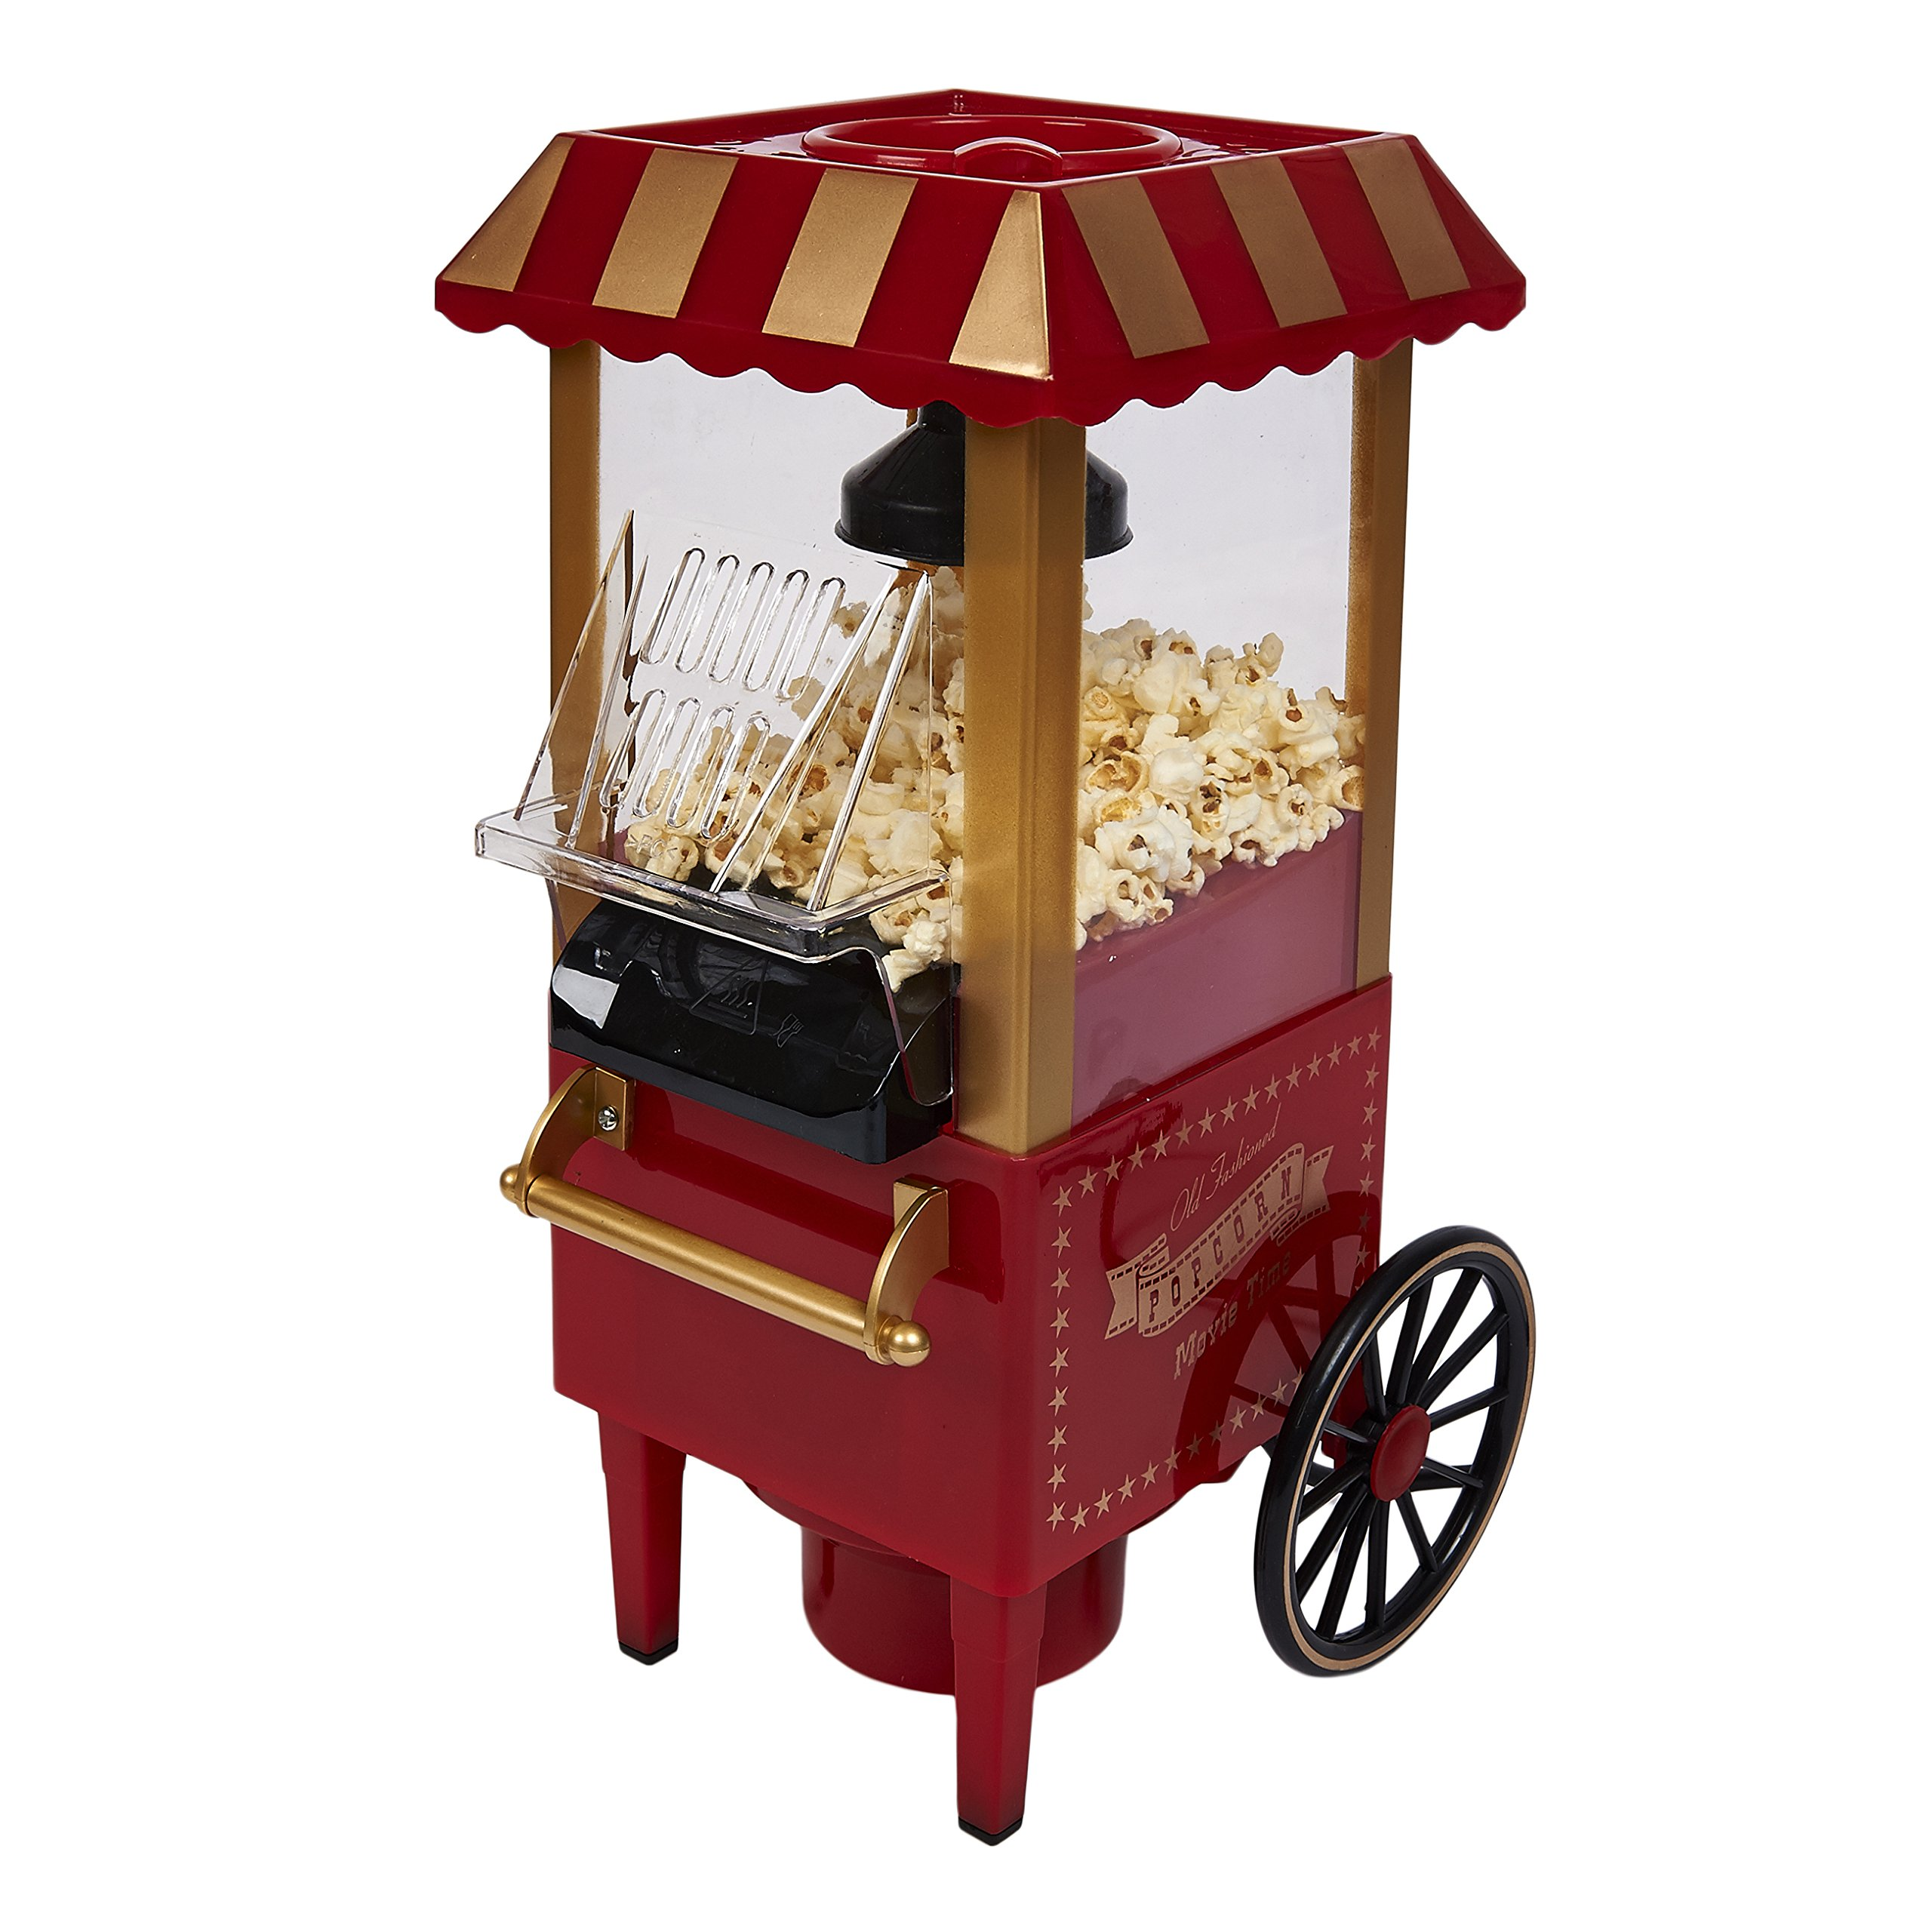 Retro Carnival Fun Fair Style Electric Hot Air Popcorn Maker Machine Popper 1930's Style by Express